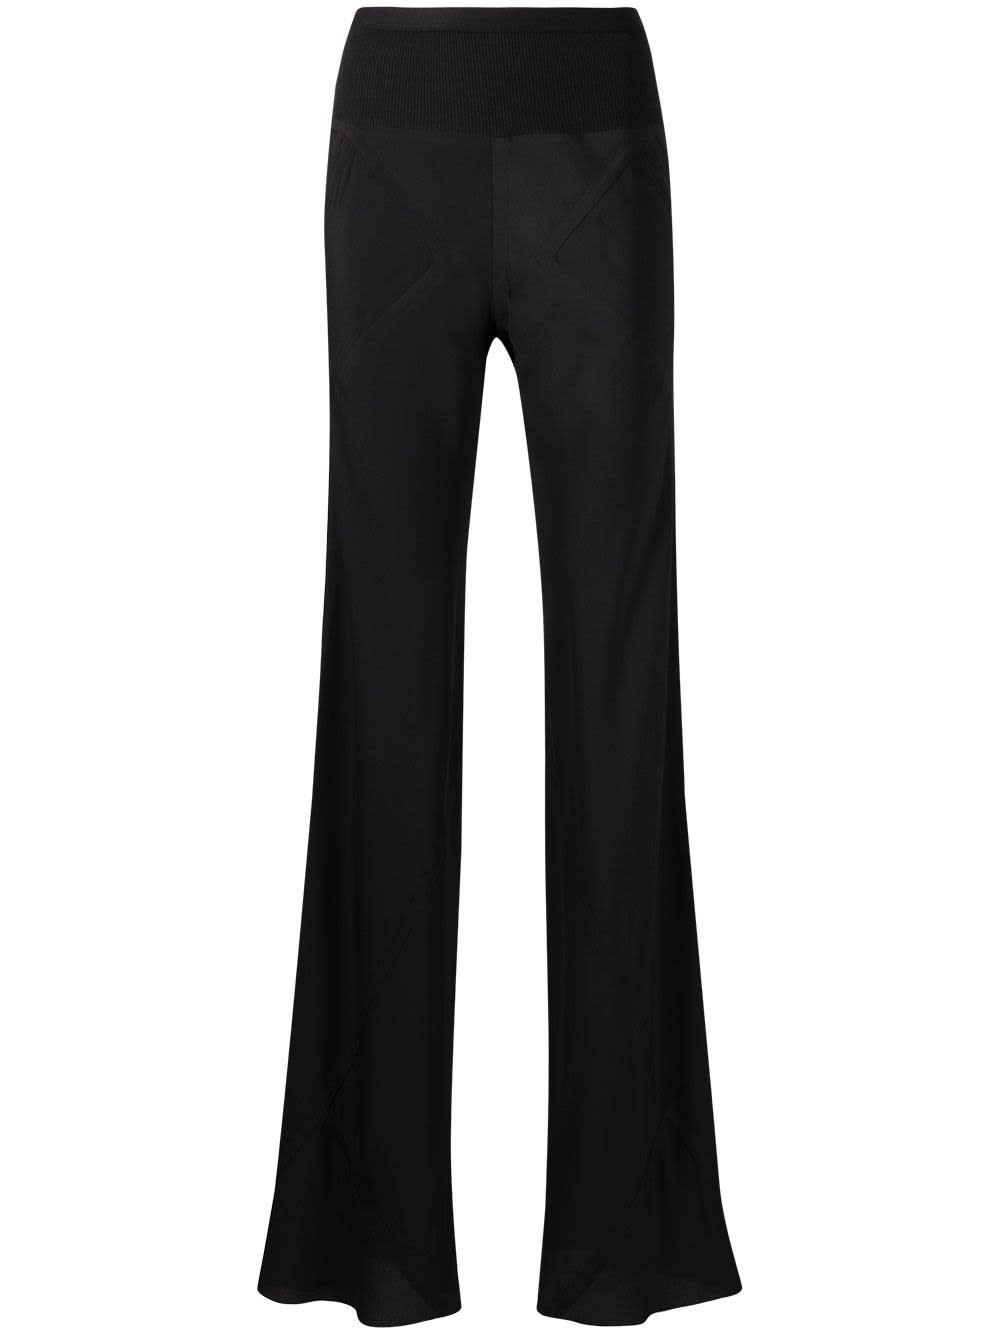 Rick Owens Flared pants BLACK FLARED TROUSERS IN SILK BLEND